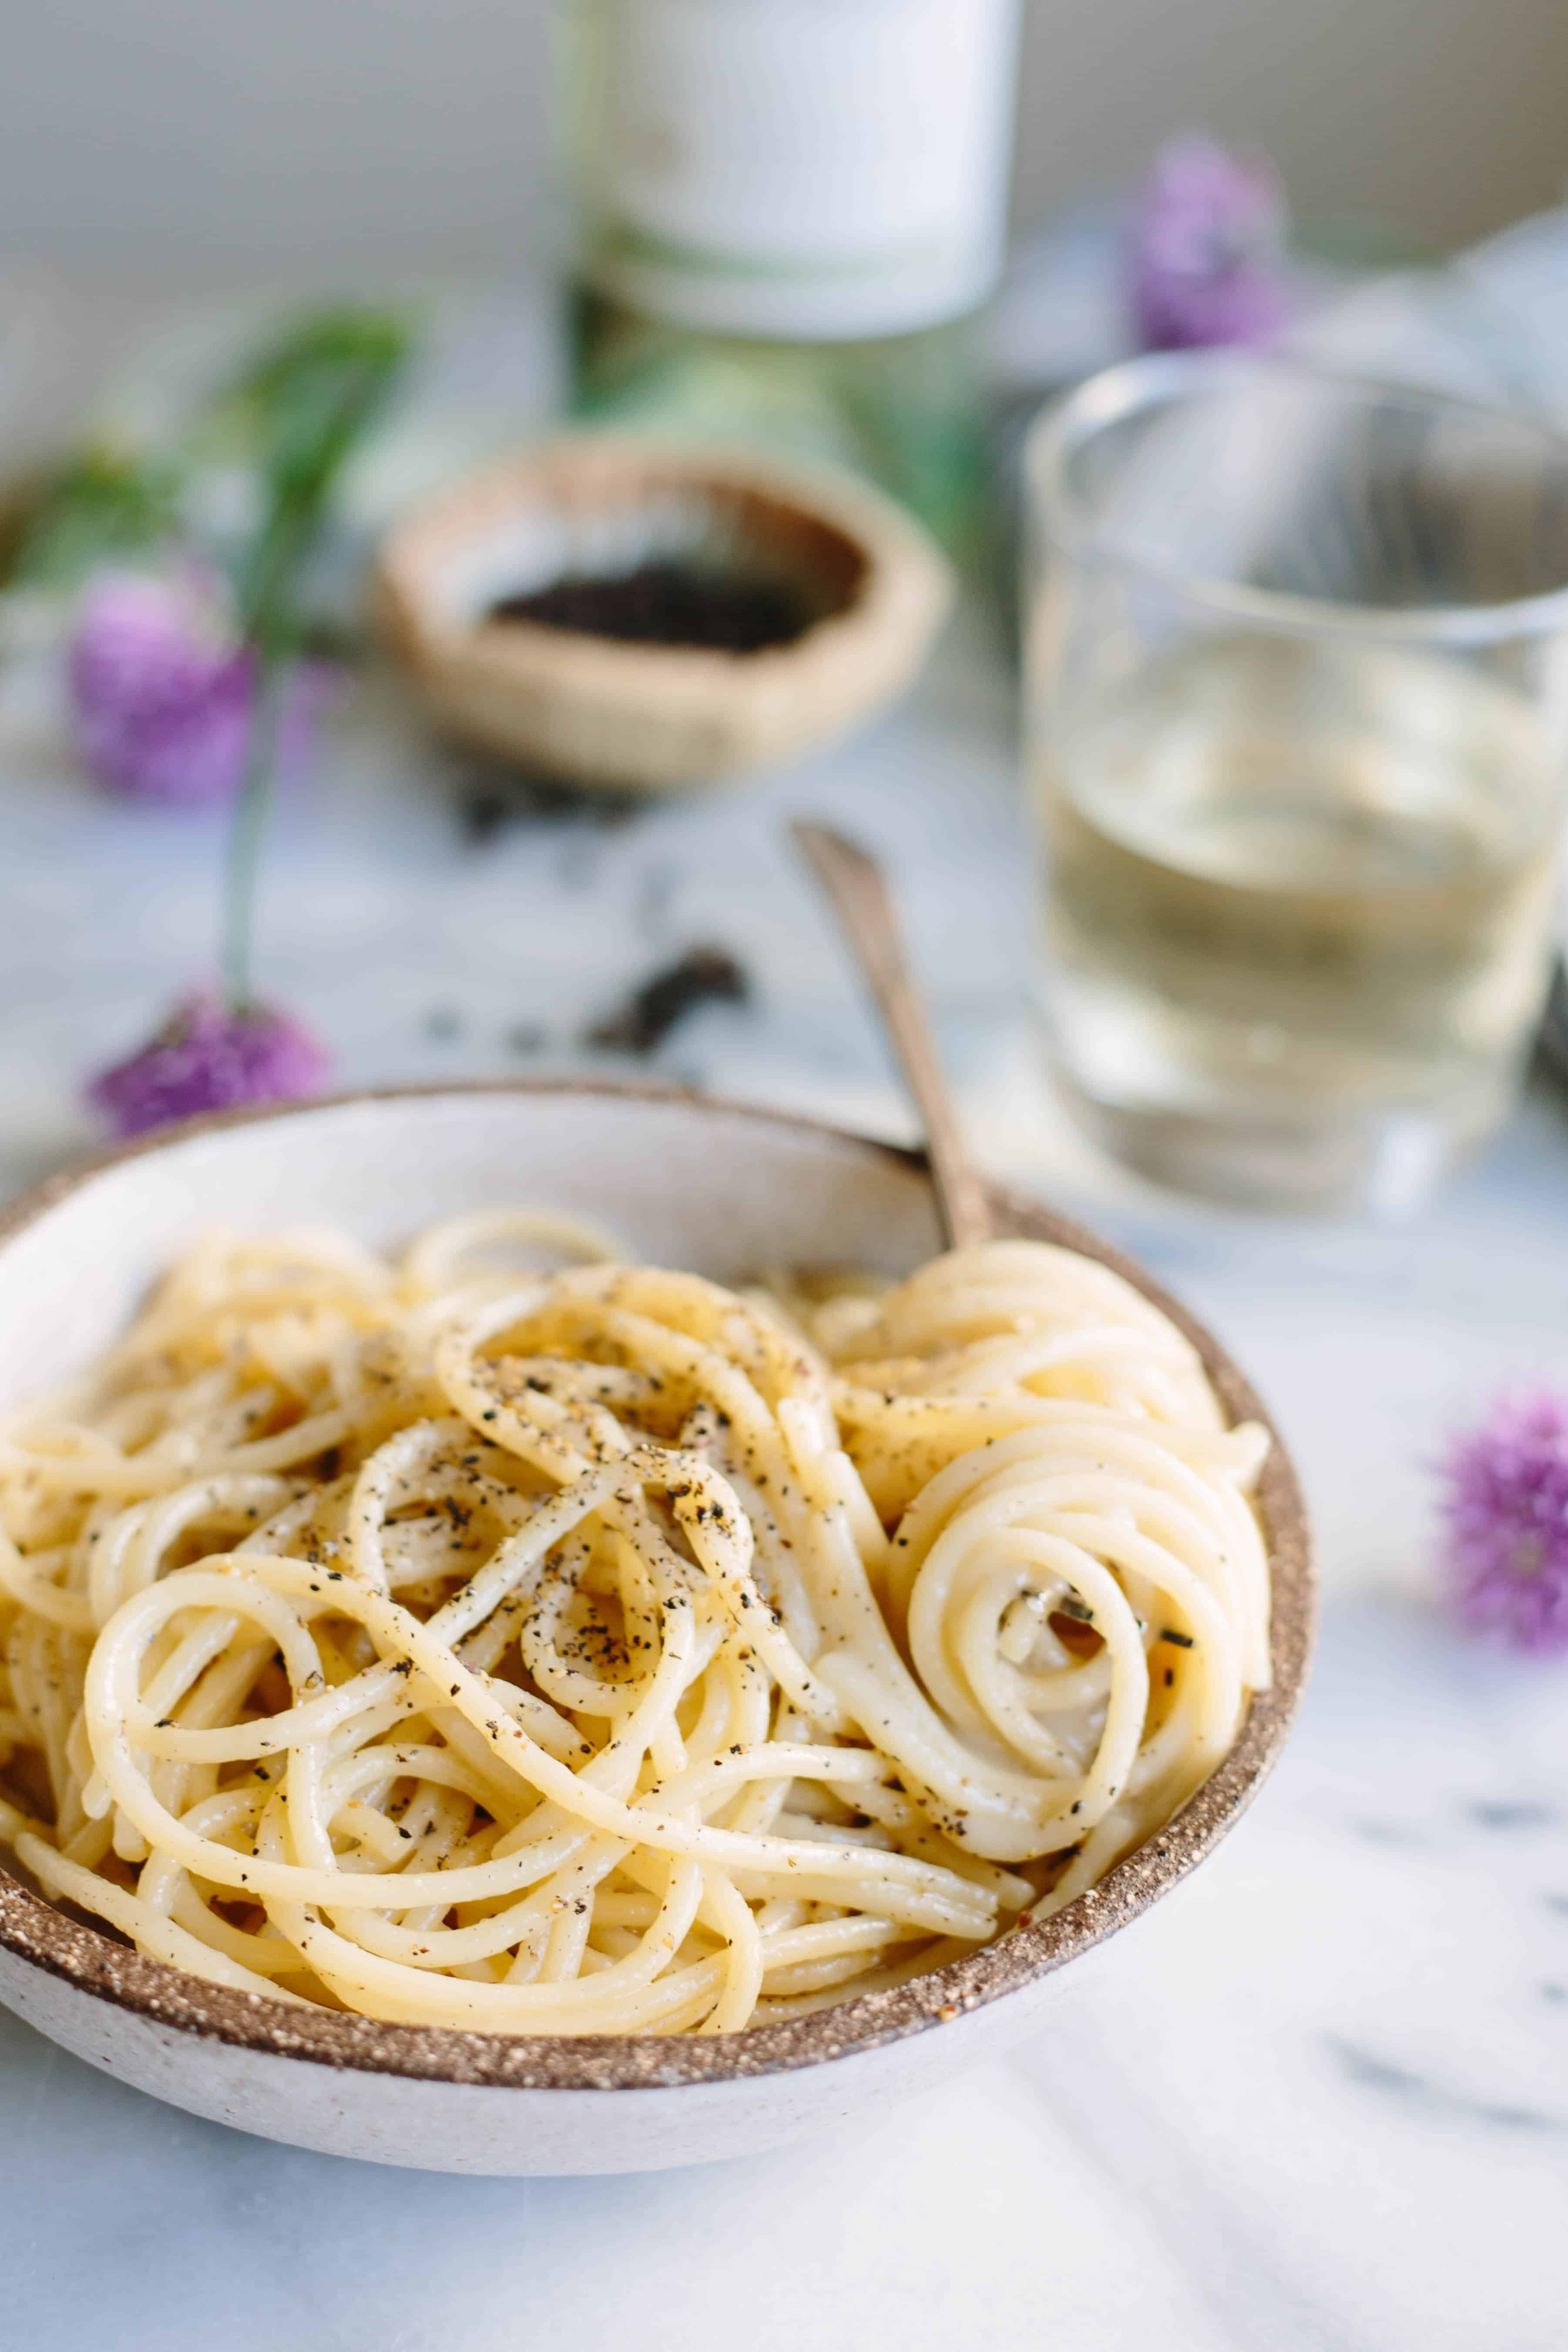 This simple classic Italian pasta recipe relies on good quality ingredients and proper technique to shine. Rich and creamy pasta perfection!